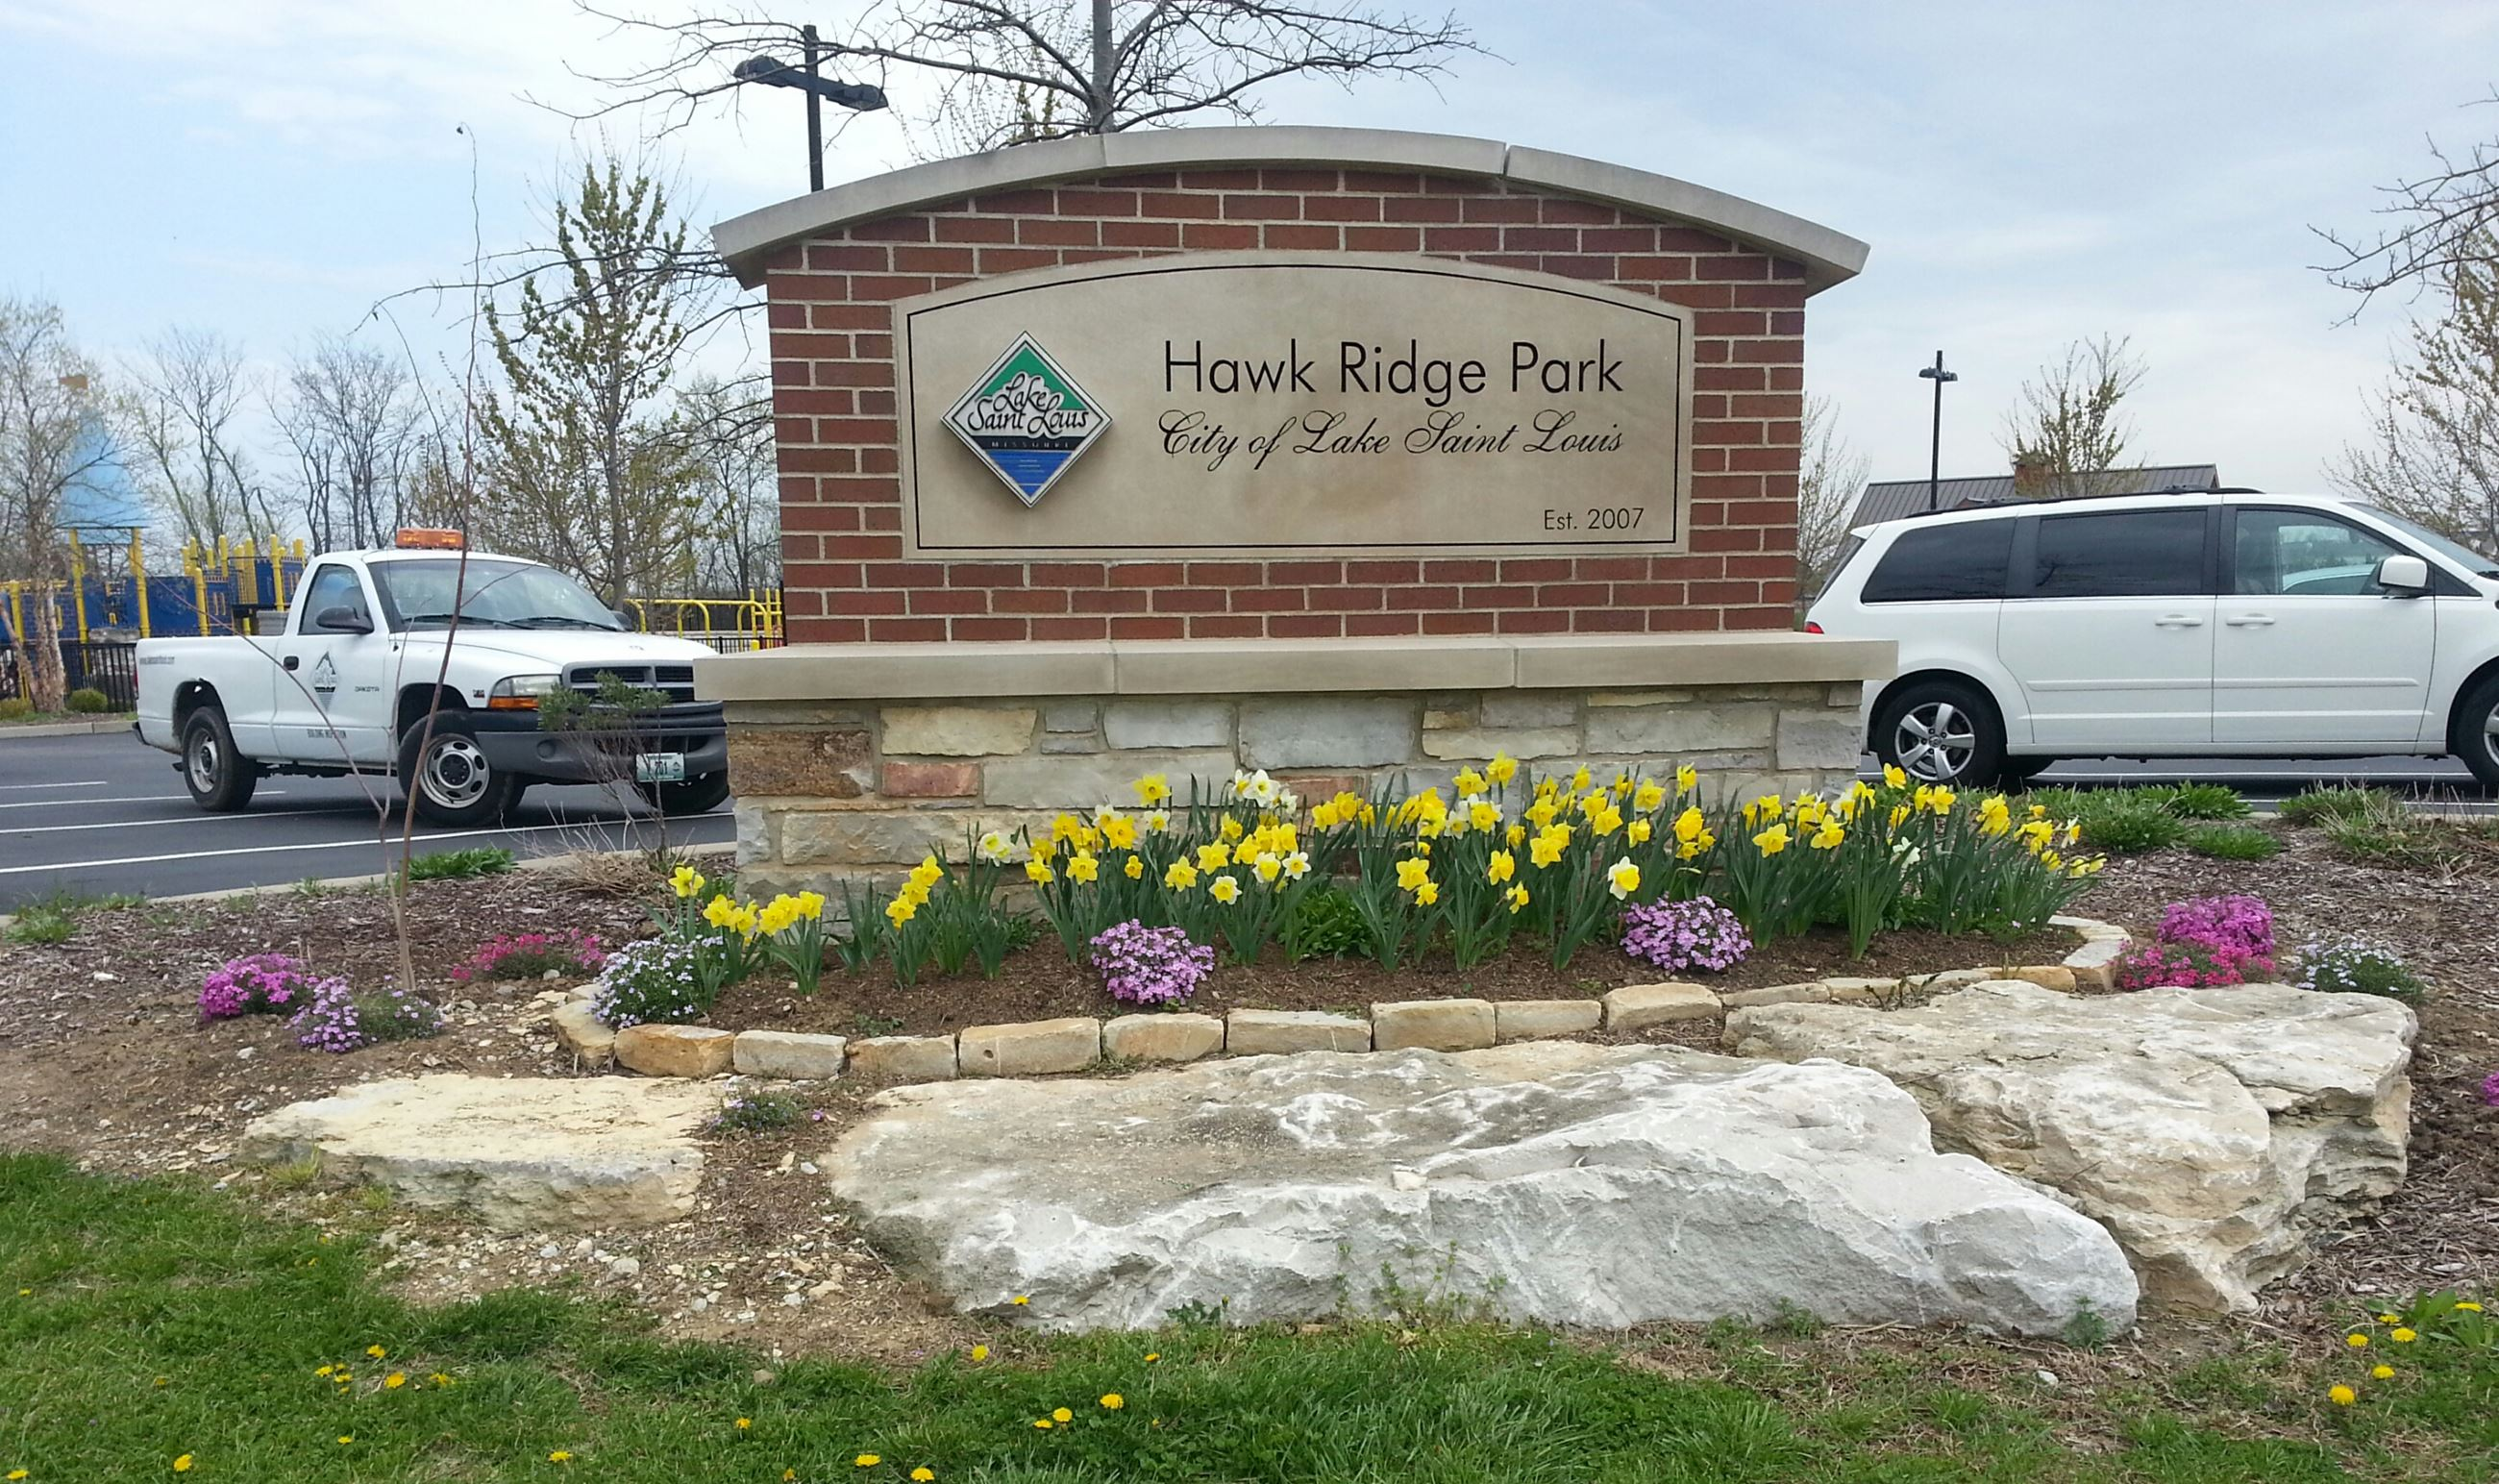 Entrance Sign for Hawk Ridge Park